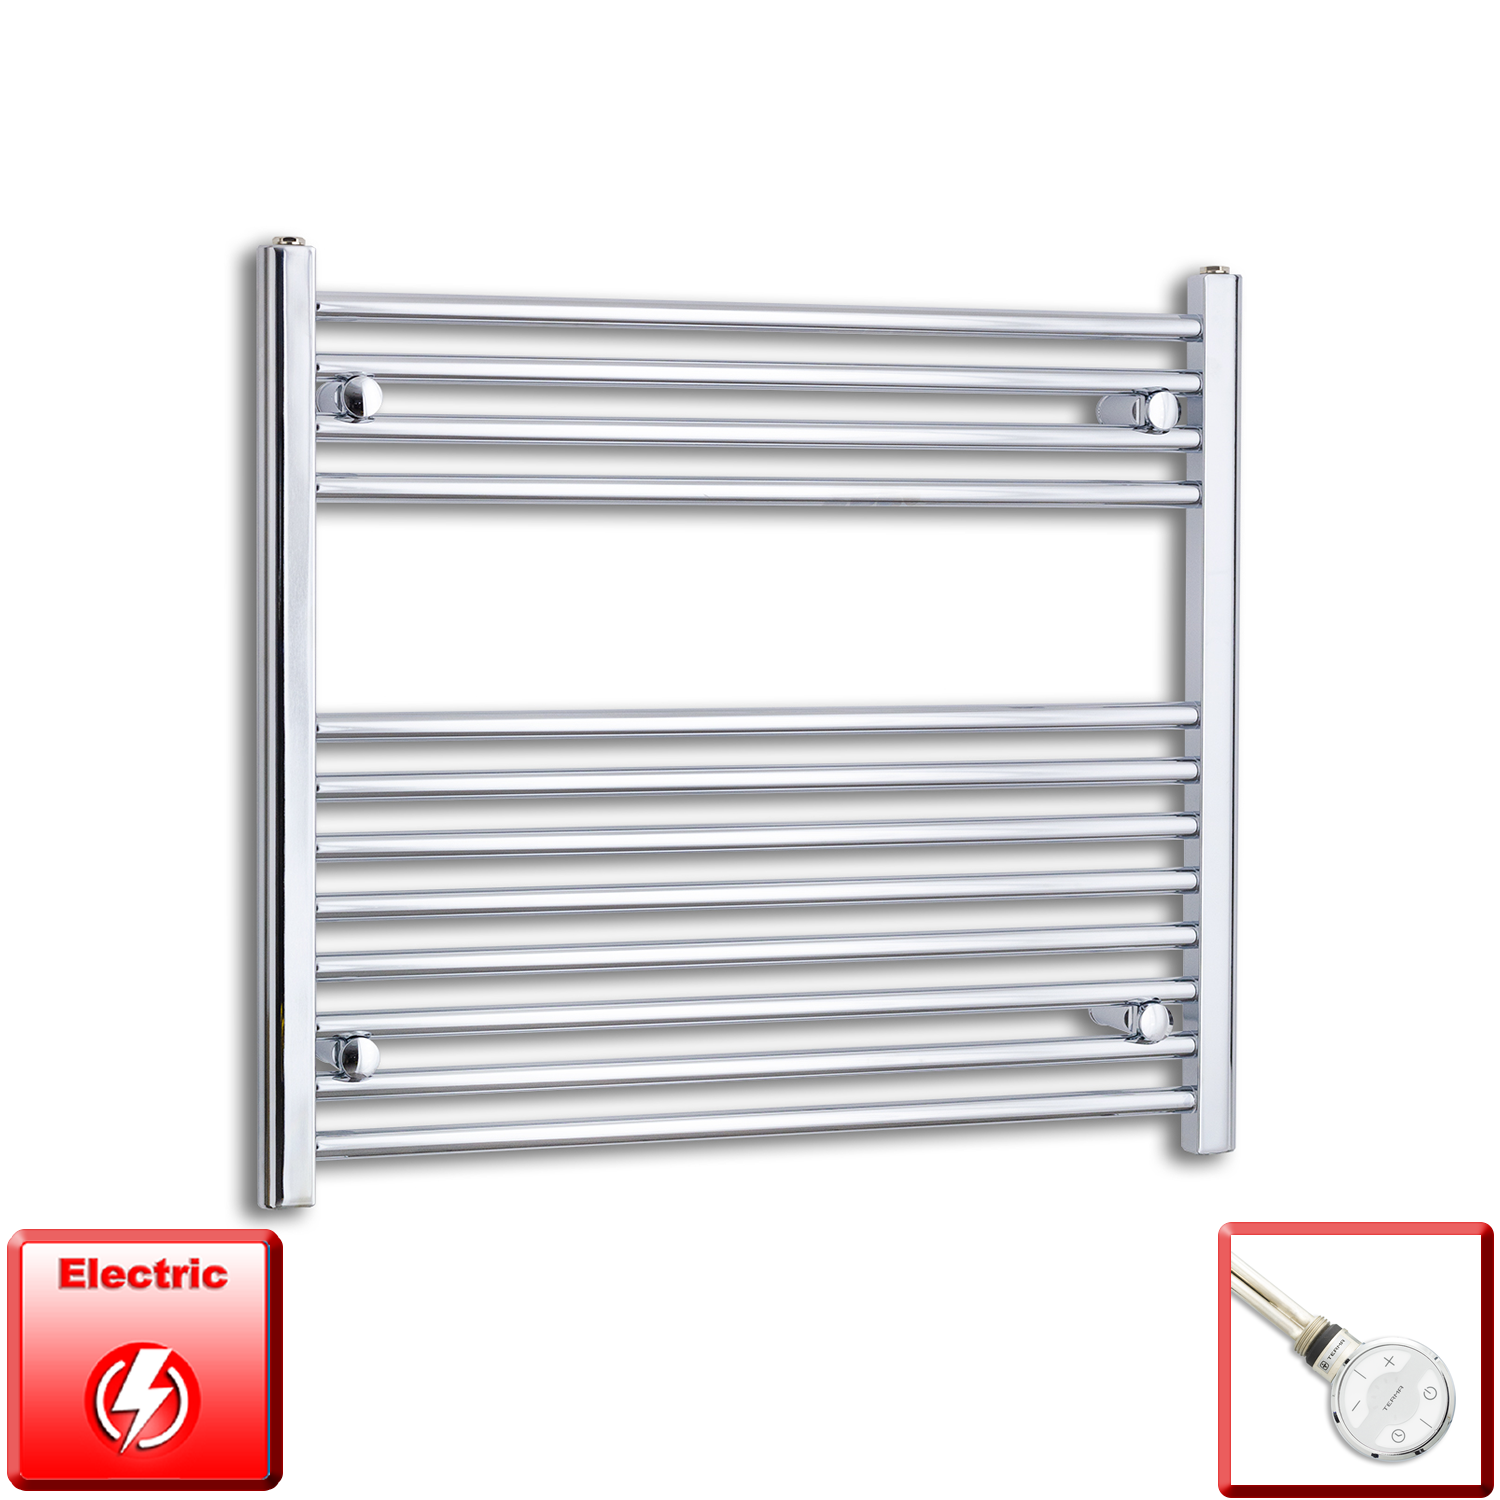 900mm Wide 700mm High Flat Chrome Pre-Filled Electric Heated Towel Rail Radiator HTR,MOA Thermostatic Element